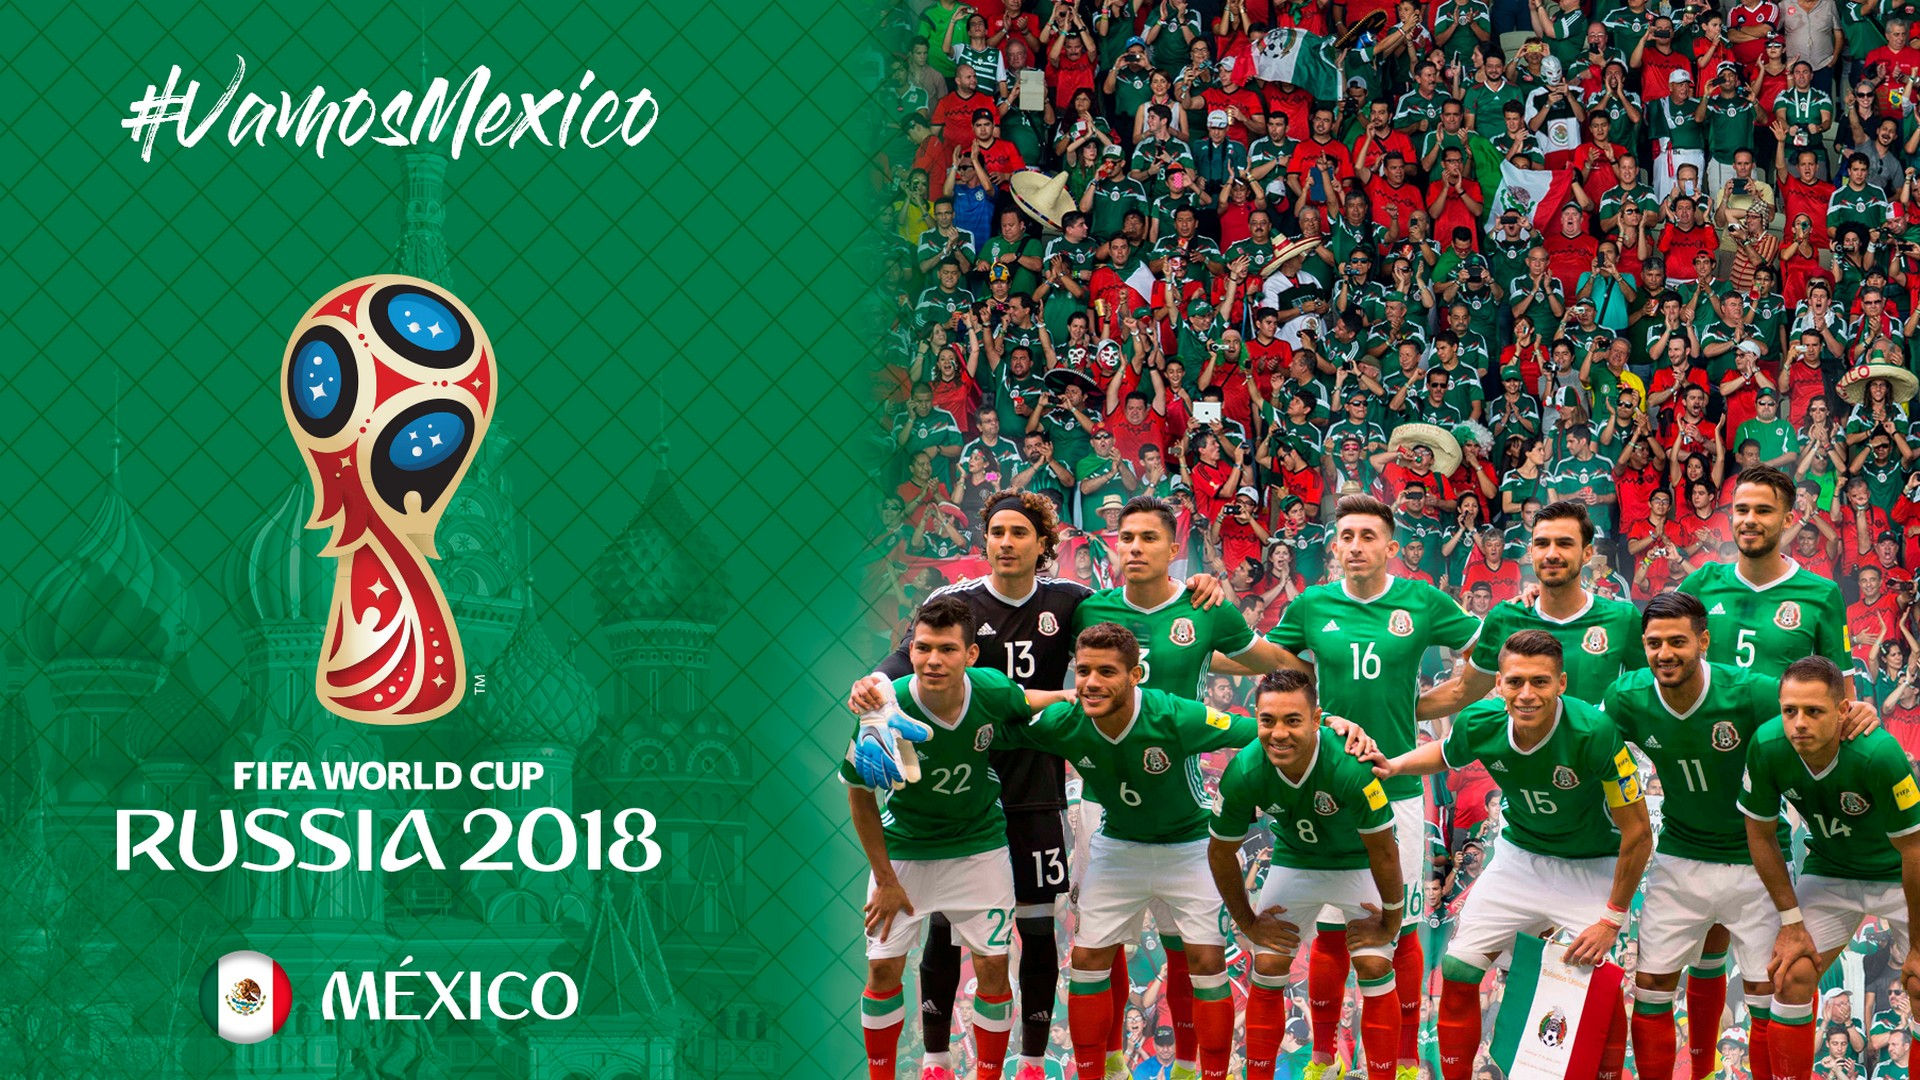 Free Download Mexico National Team Wallpaper Hd 2019 Football